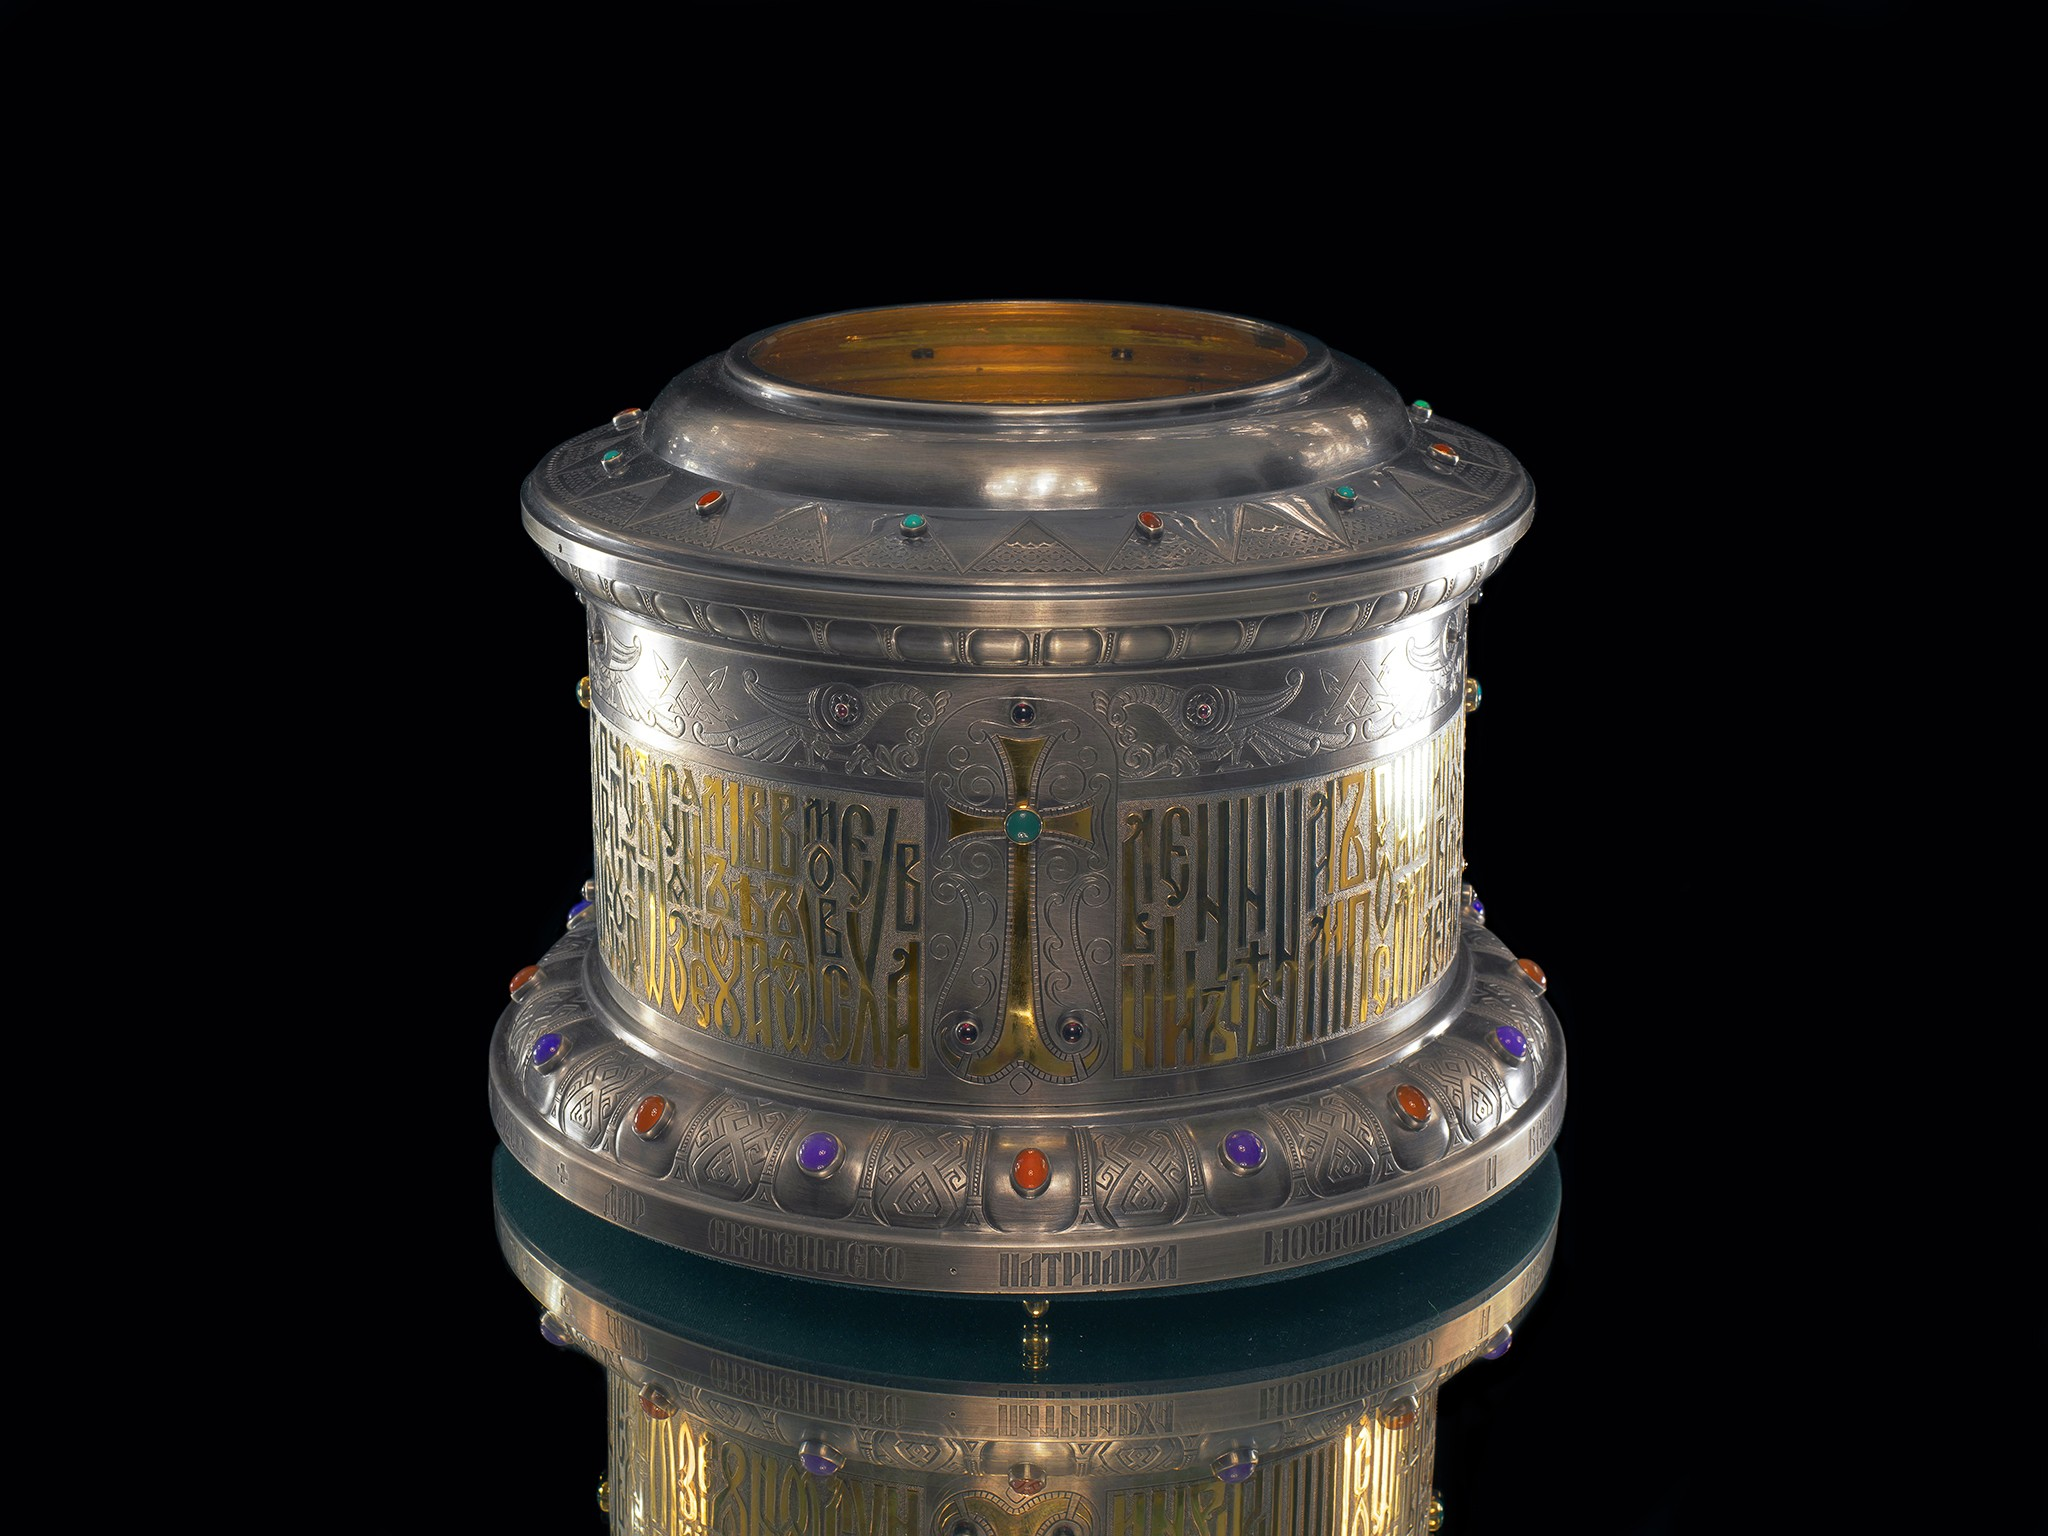 Object photography for jewelry advertising reliquary for church